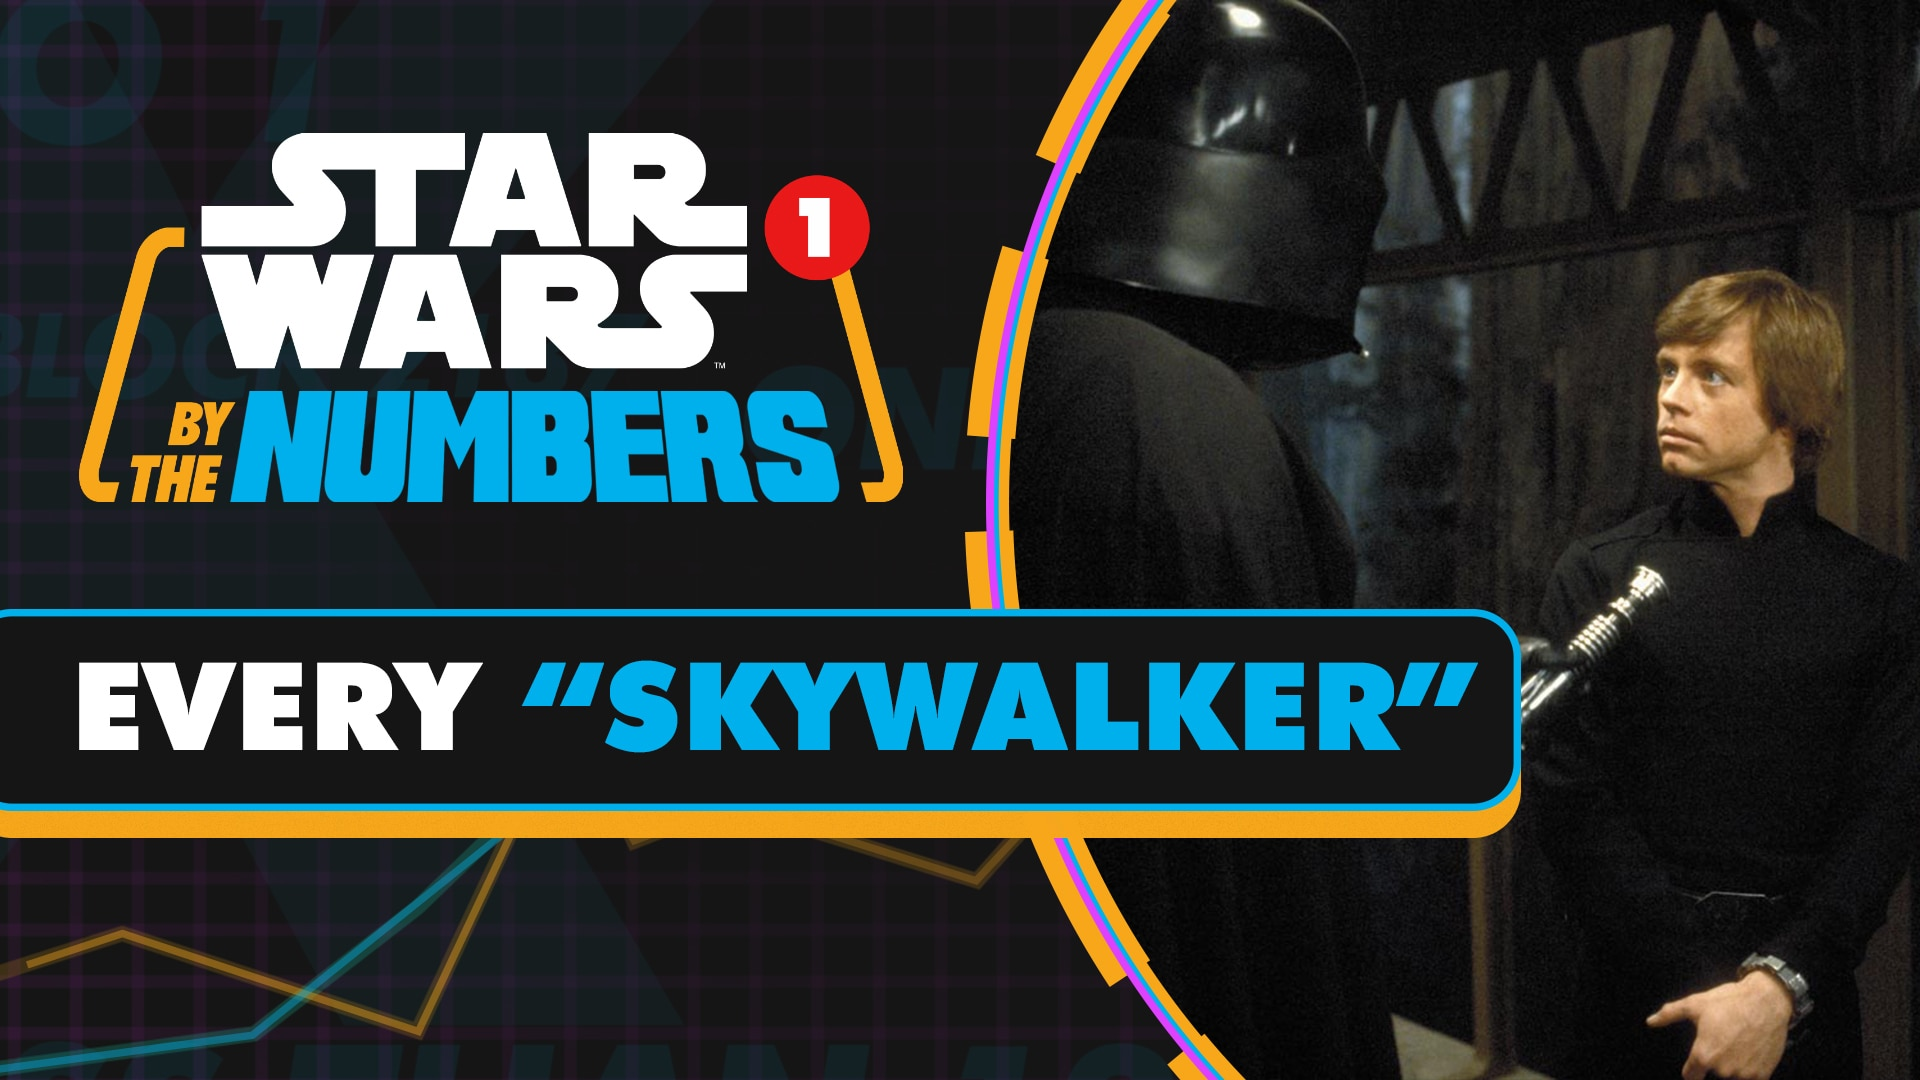 Every Time Skywalker is Said in Star Wars Movies | Star Wars By the Numbers